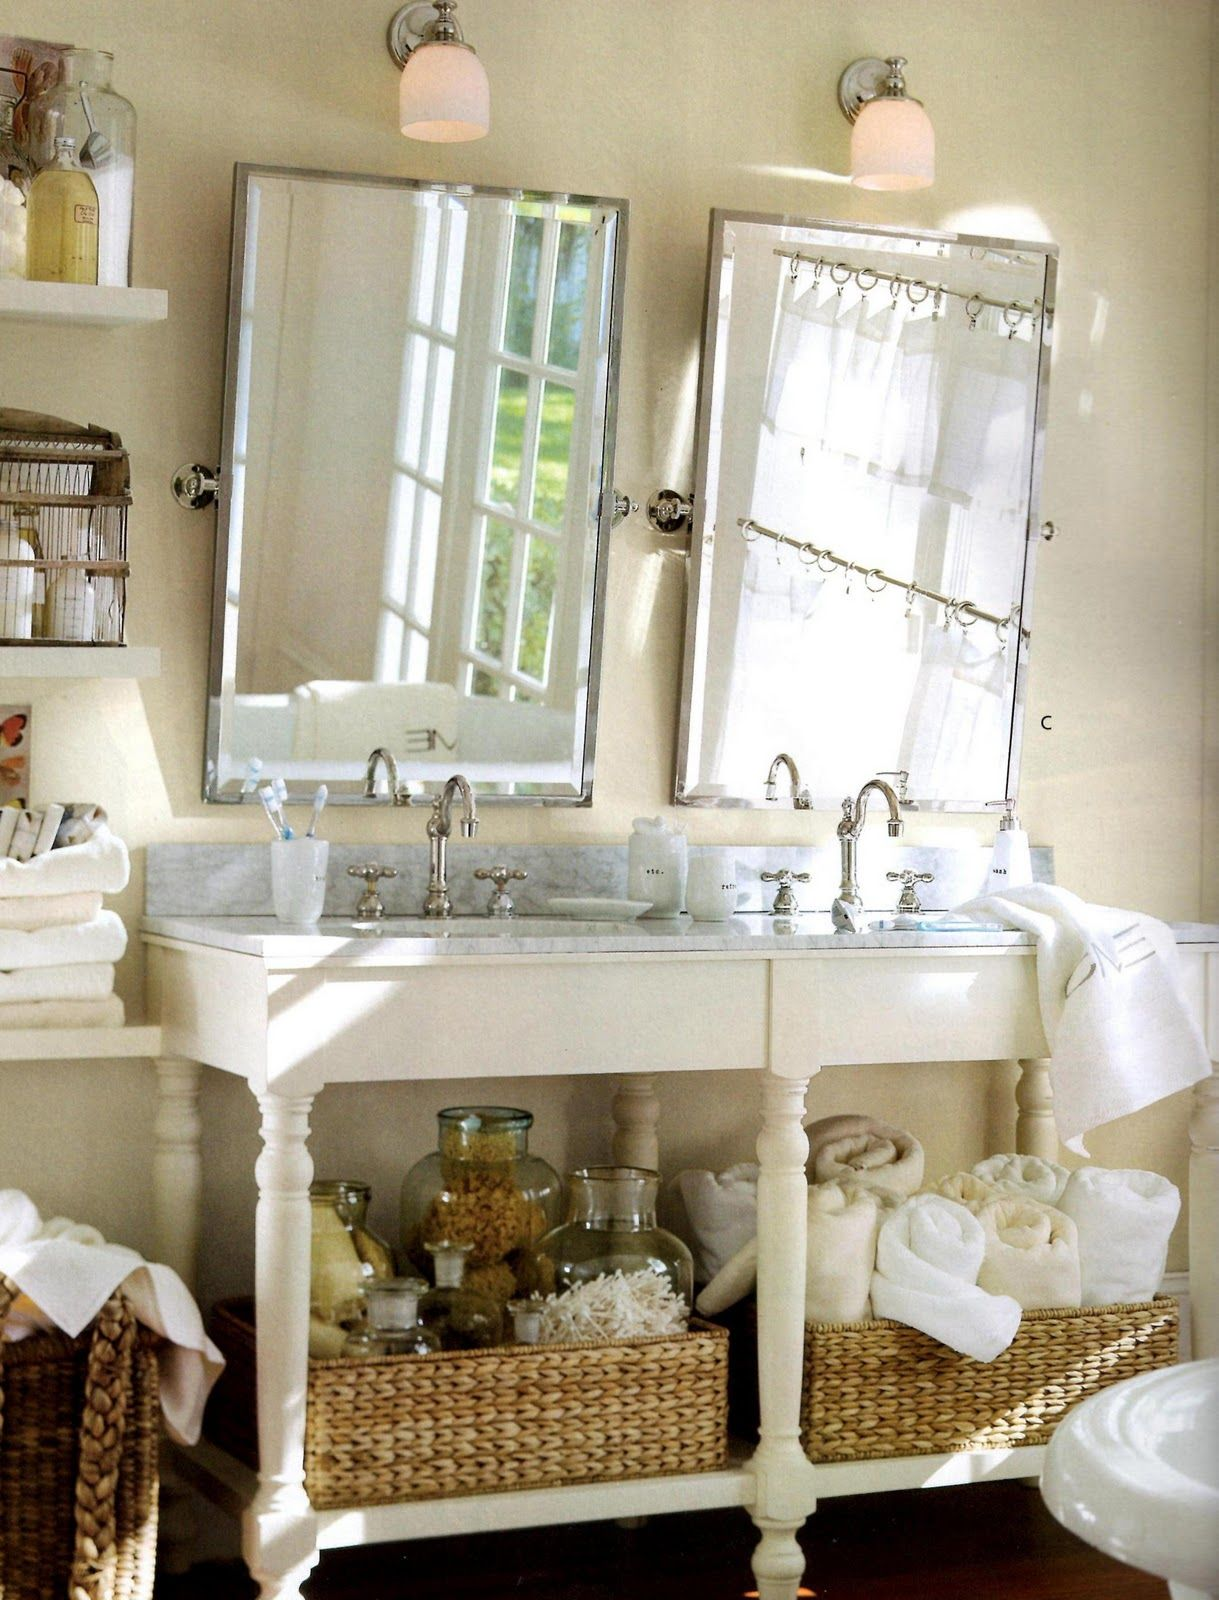 The Immensely Cool Diy Bathroom Remodel Ways You Cannot Find On The ...